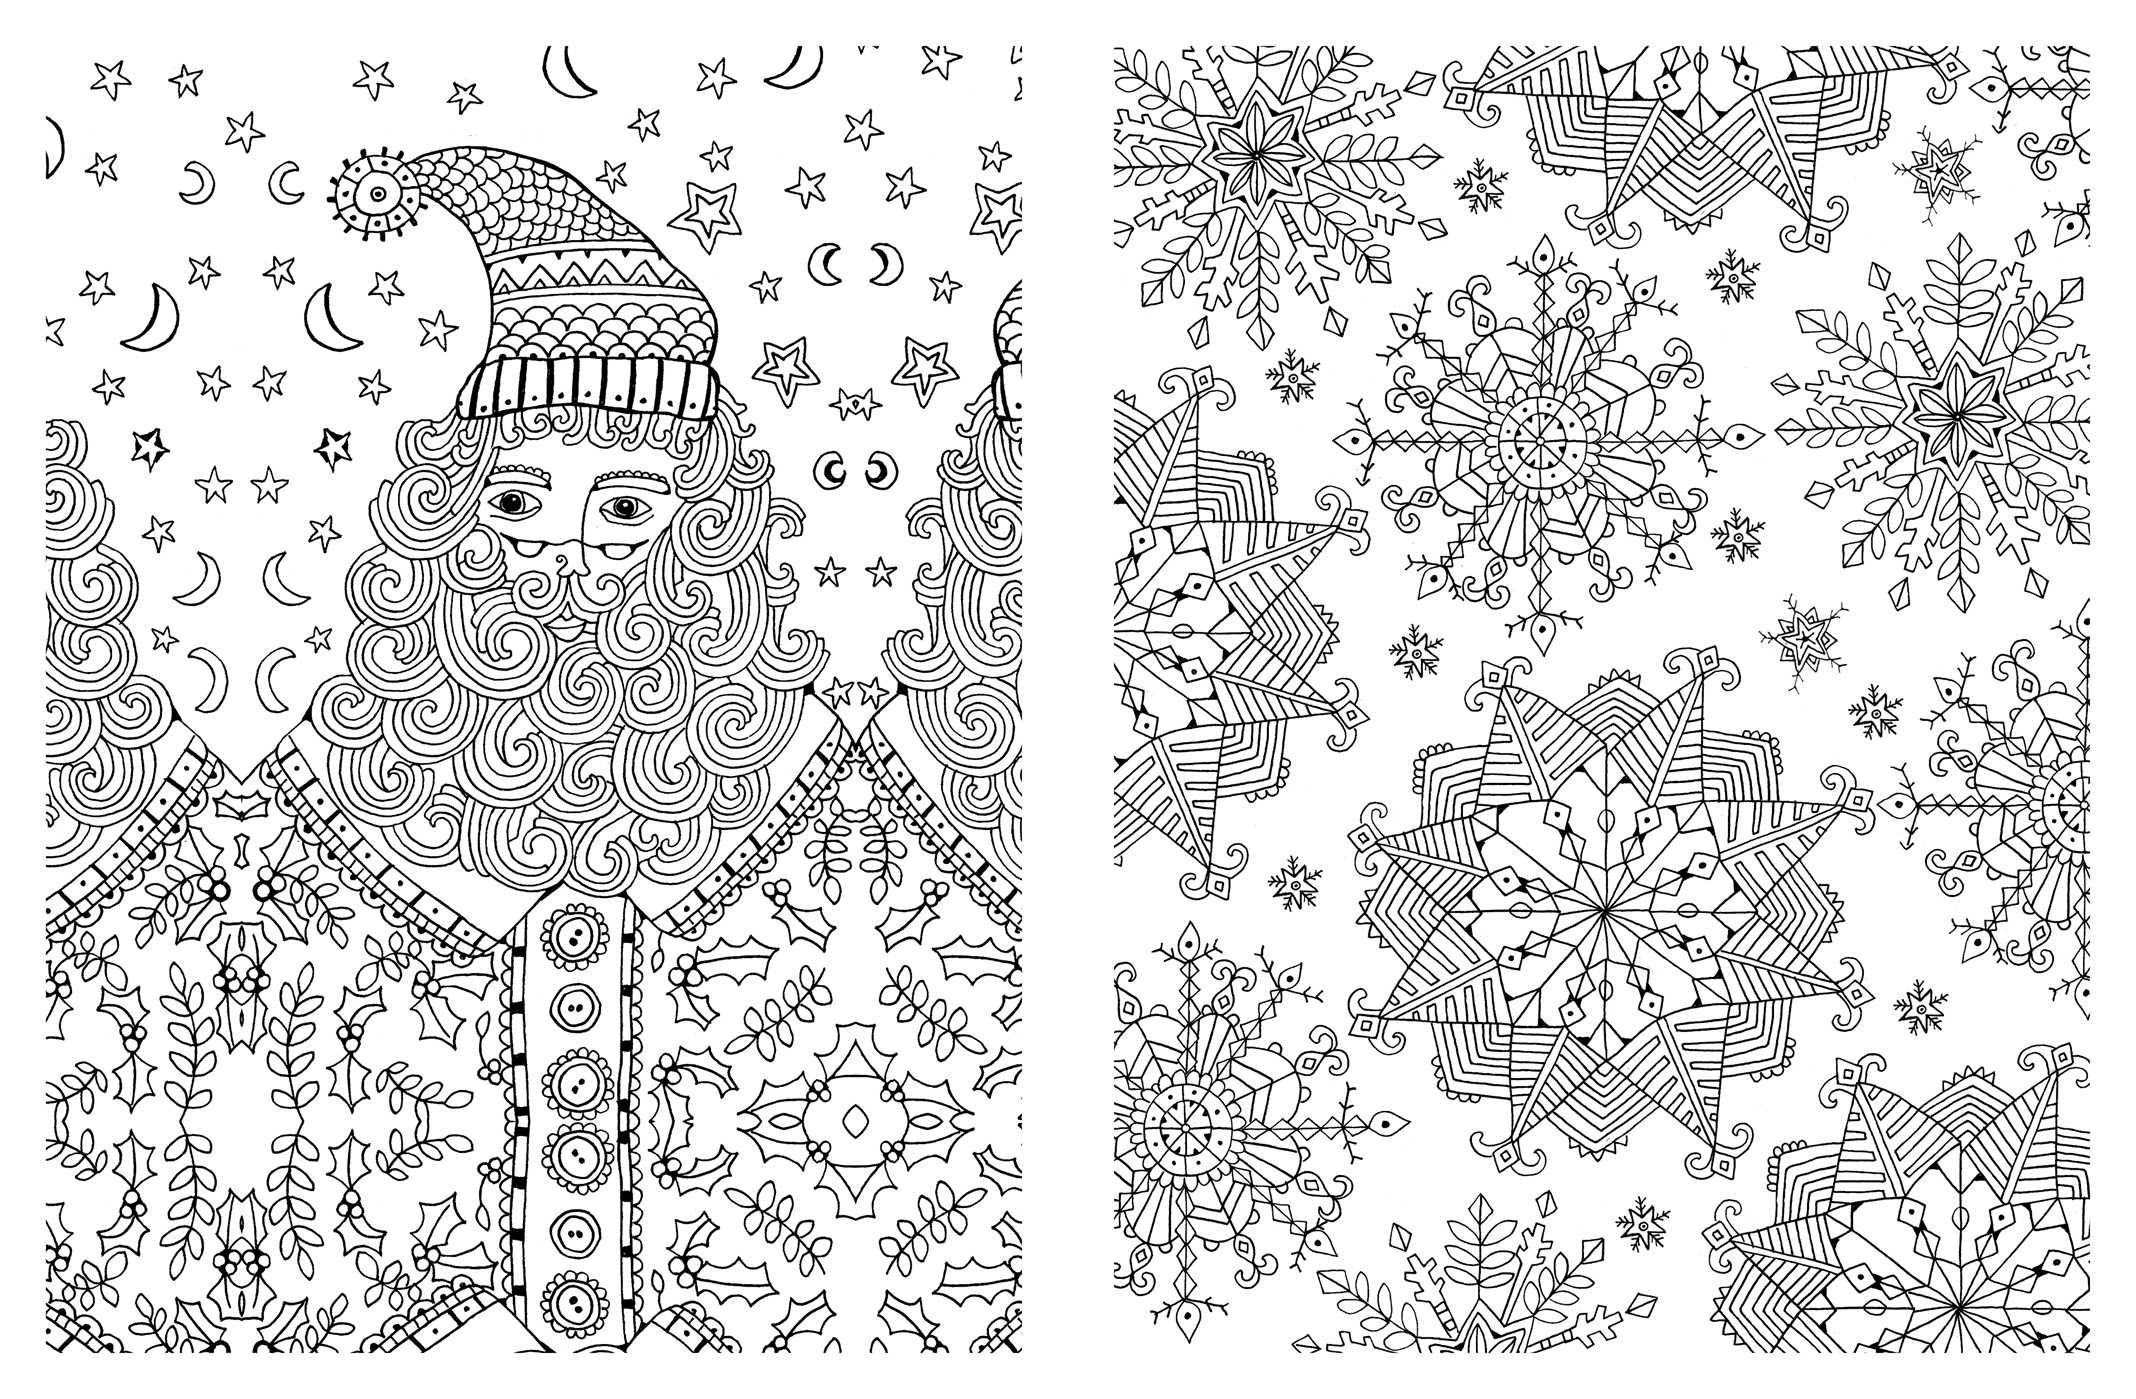 Advanced Xmas Coloring Pages - Coloring Pages For All Ages